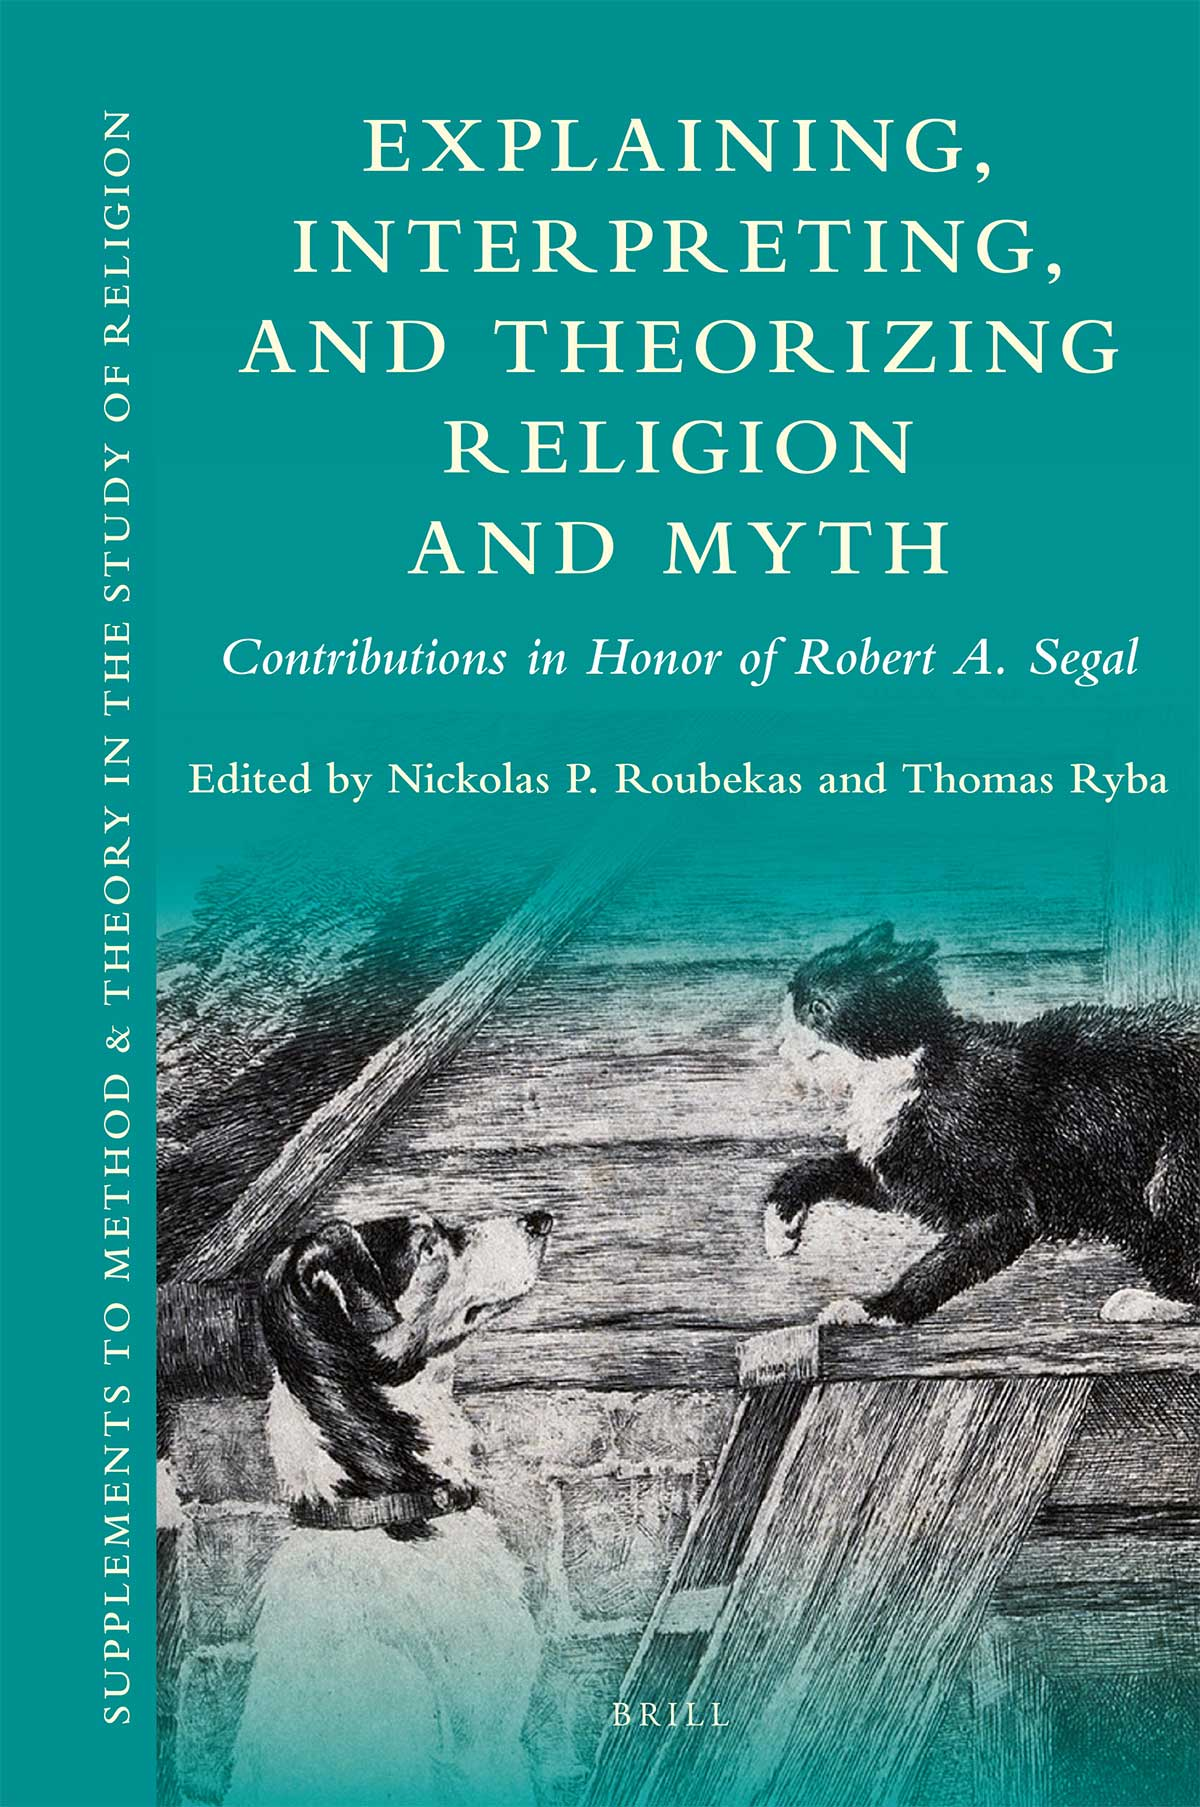 Explaining, Interpreting, and Theorizing Religion and Myth Contributions in Honor of Robert A. Segal